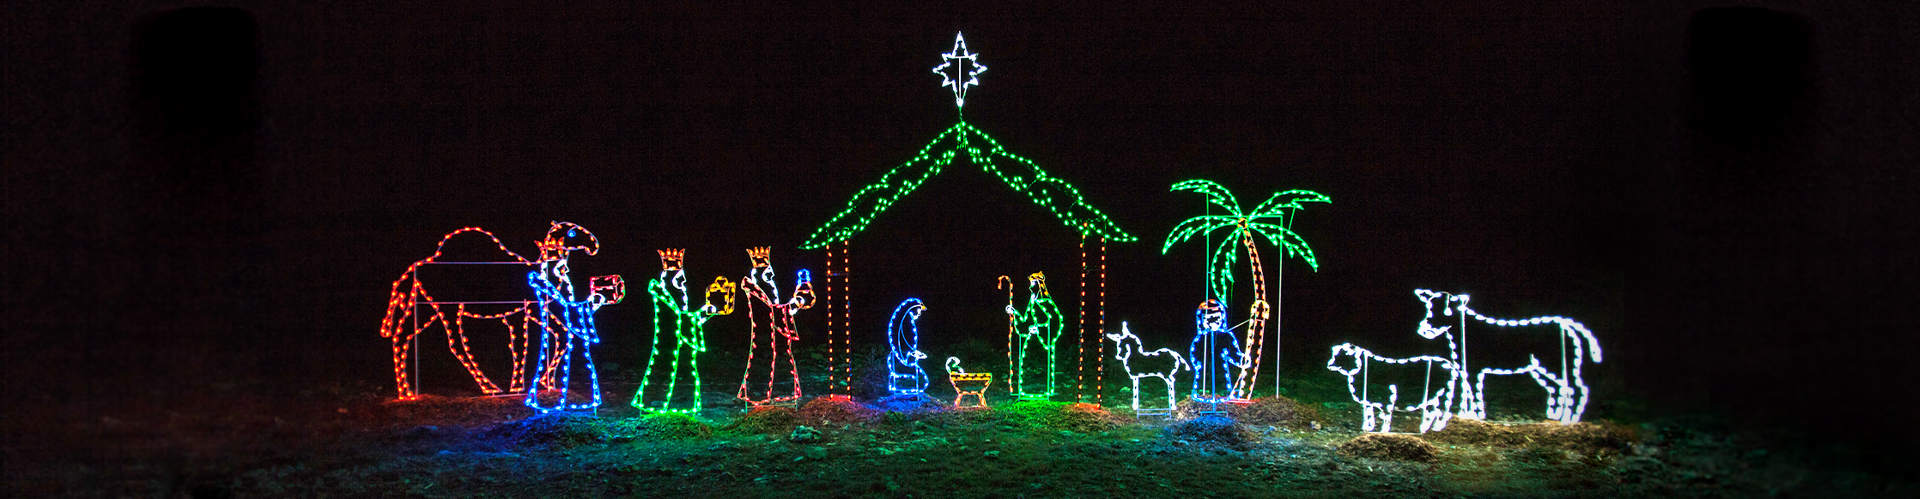 Nativity Scene Christmas Lights